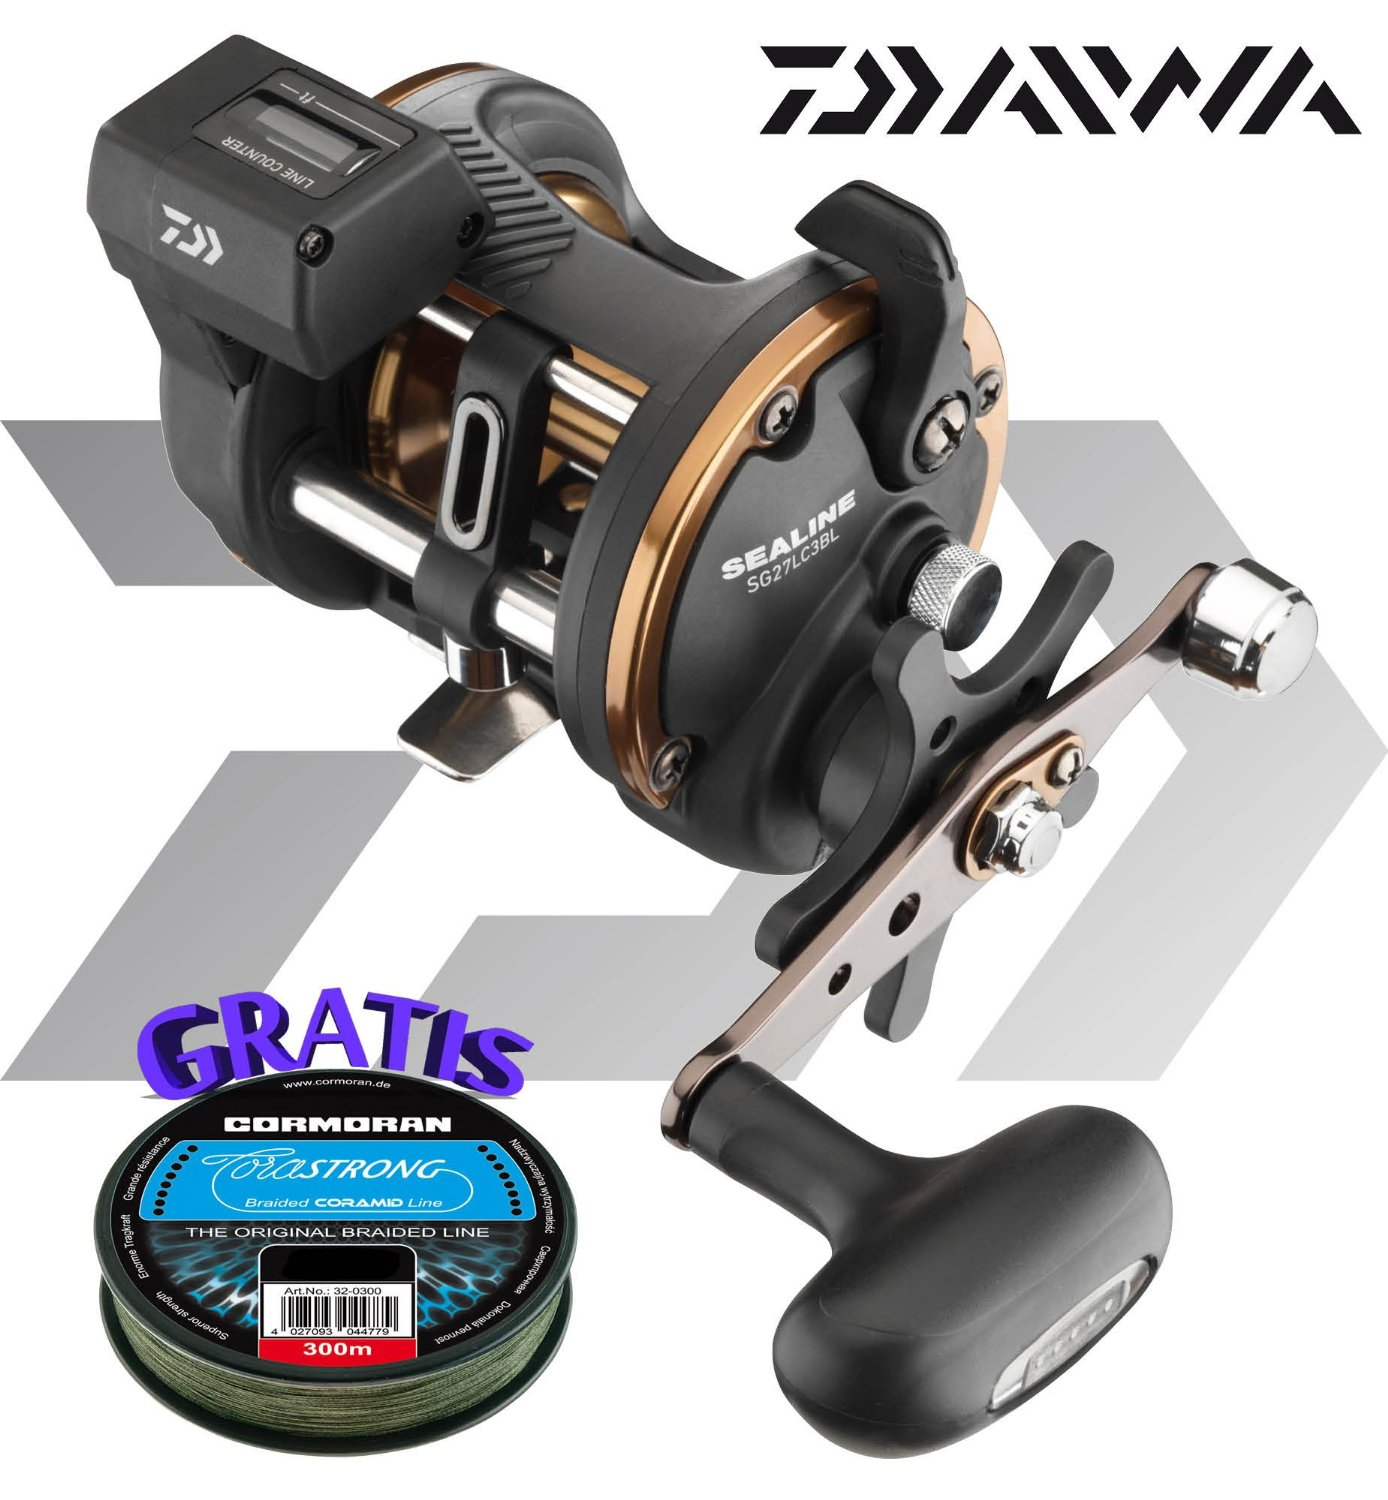 90eb45fbd9c Get Quotations · Daiwa Sealine SG 47LC3BL - Multiplier reel left hand with  Linecounter + braided line